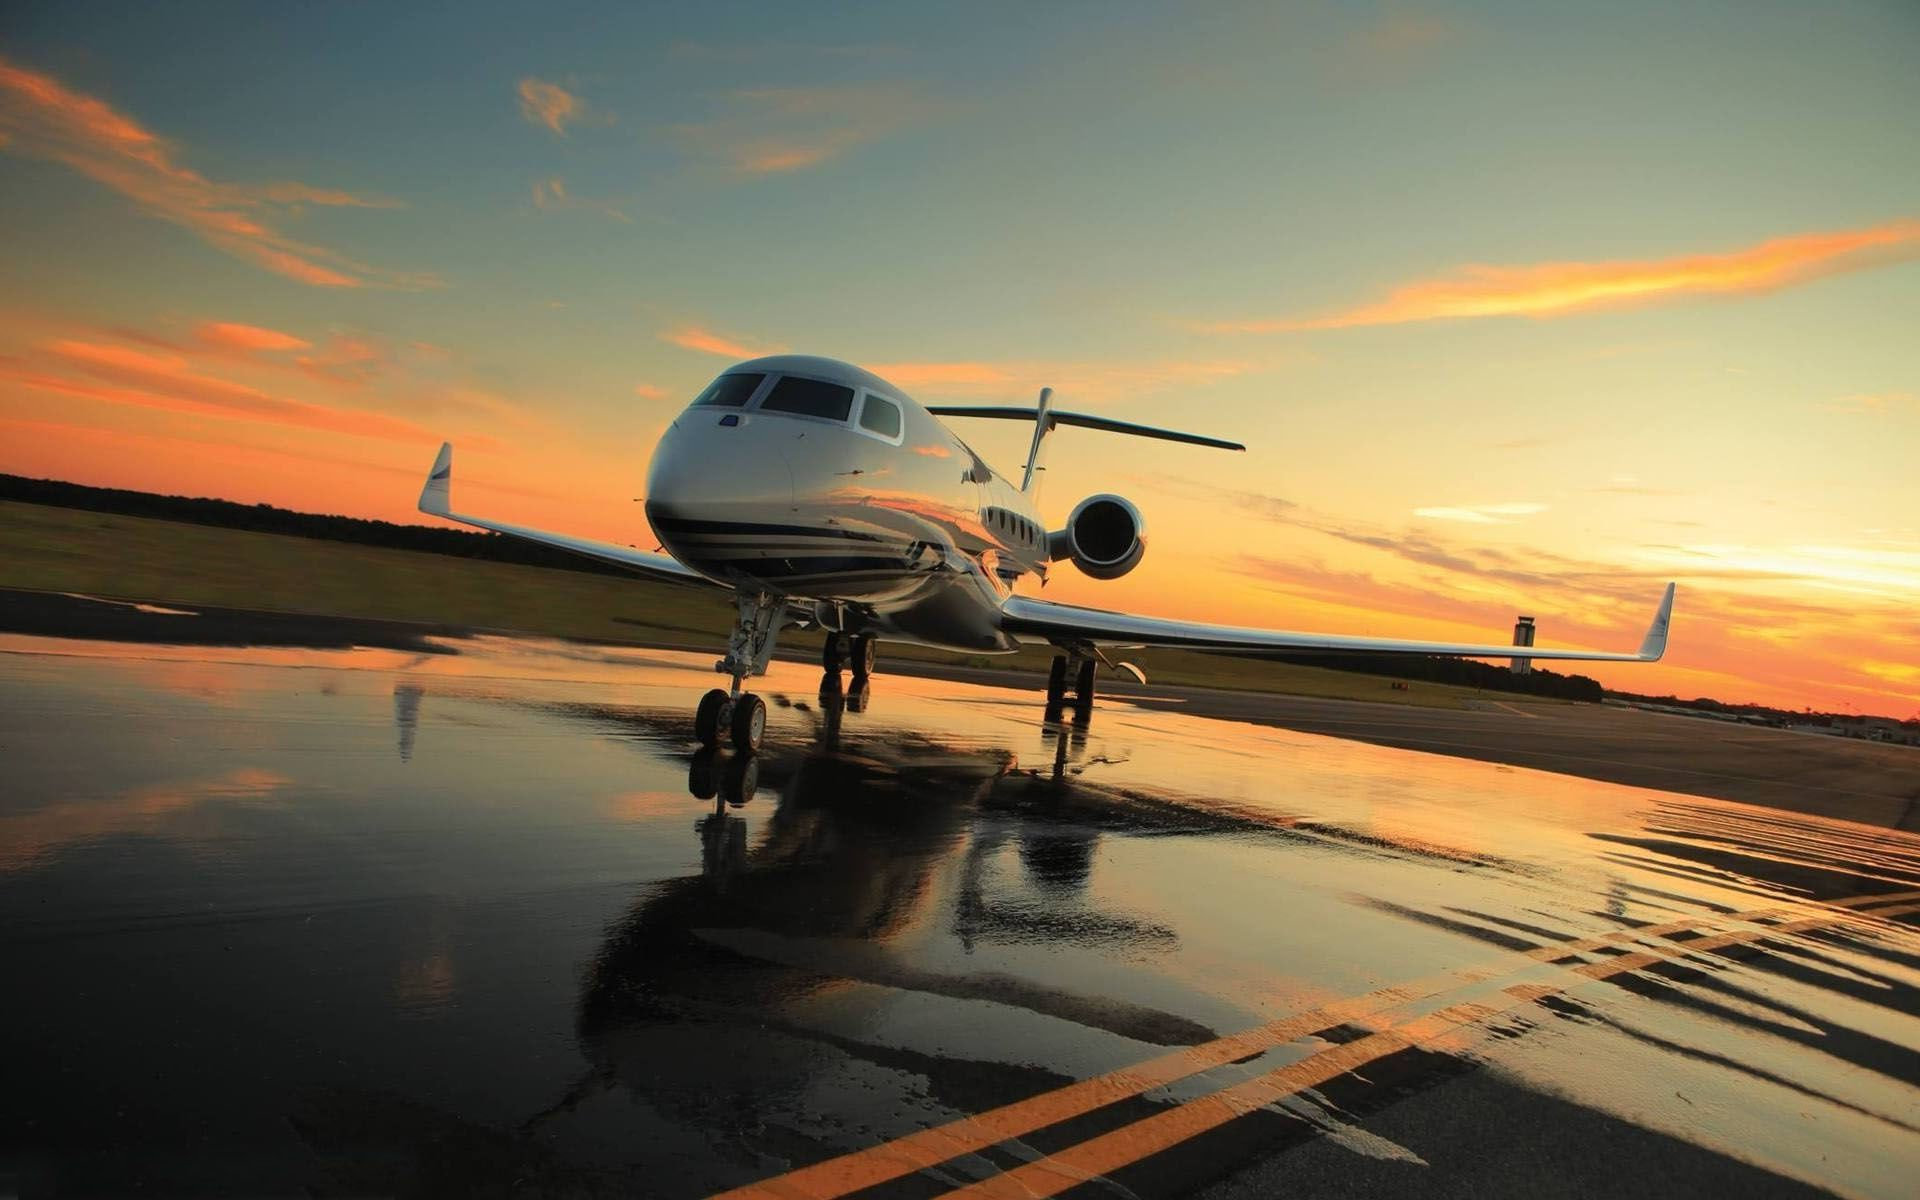 Hd Private Jet Wallpapers Download Free 734023 Traveling By Yourself Travel Deals Airplane Wallpaper